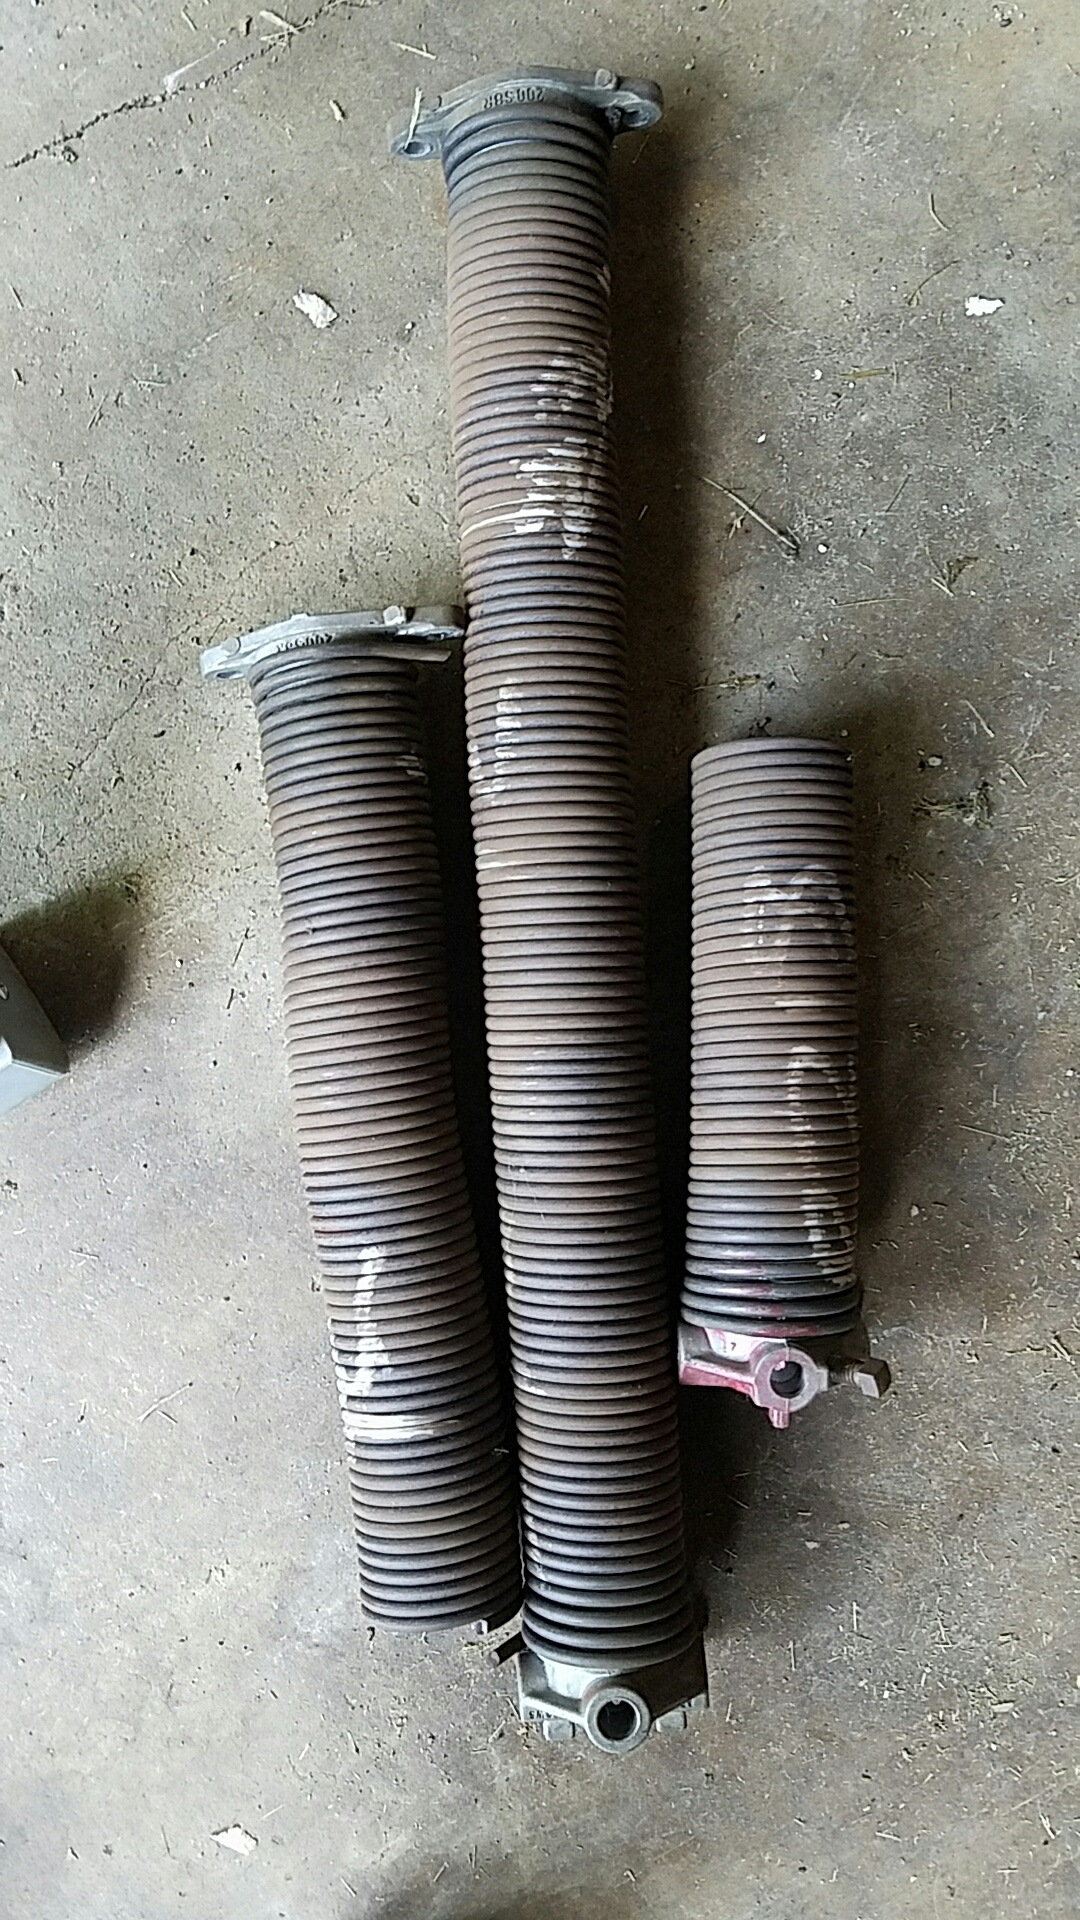 Replaced garage door Springs